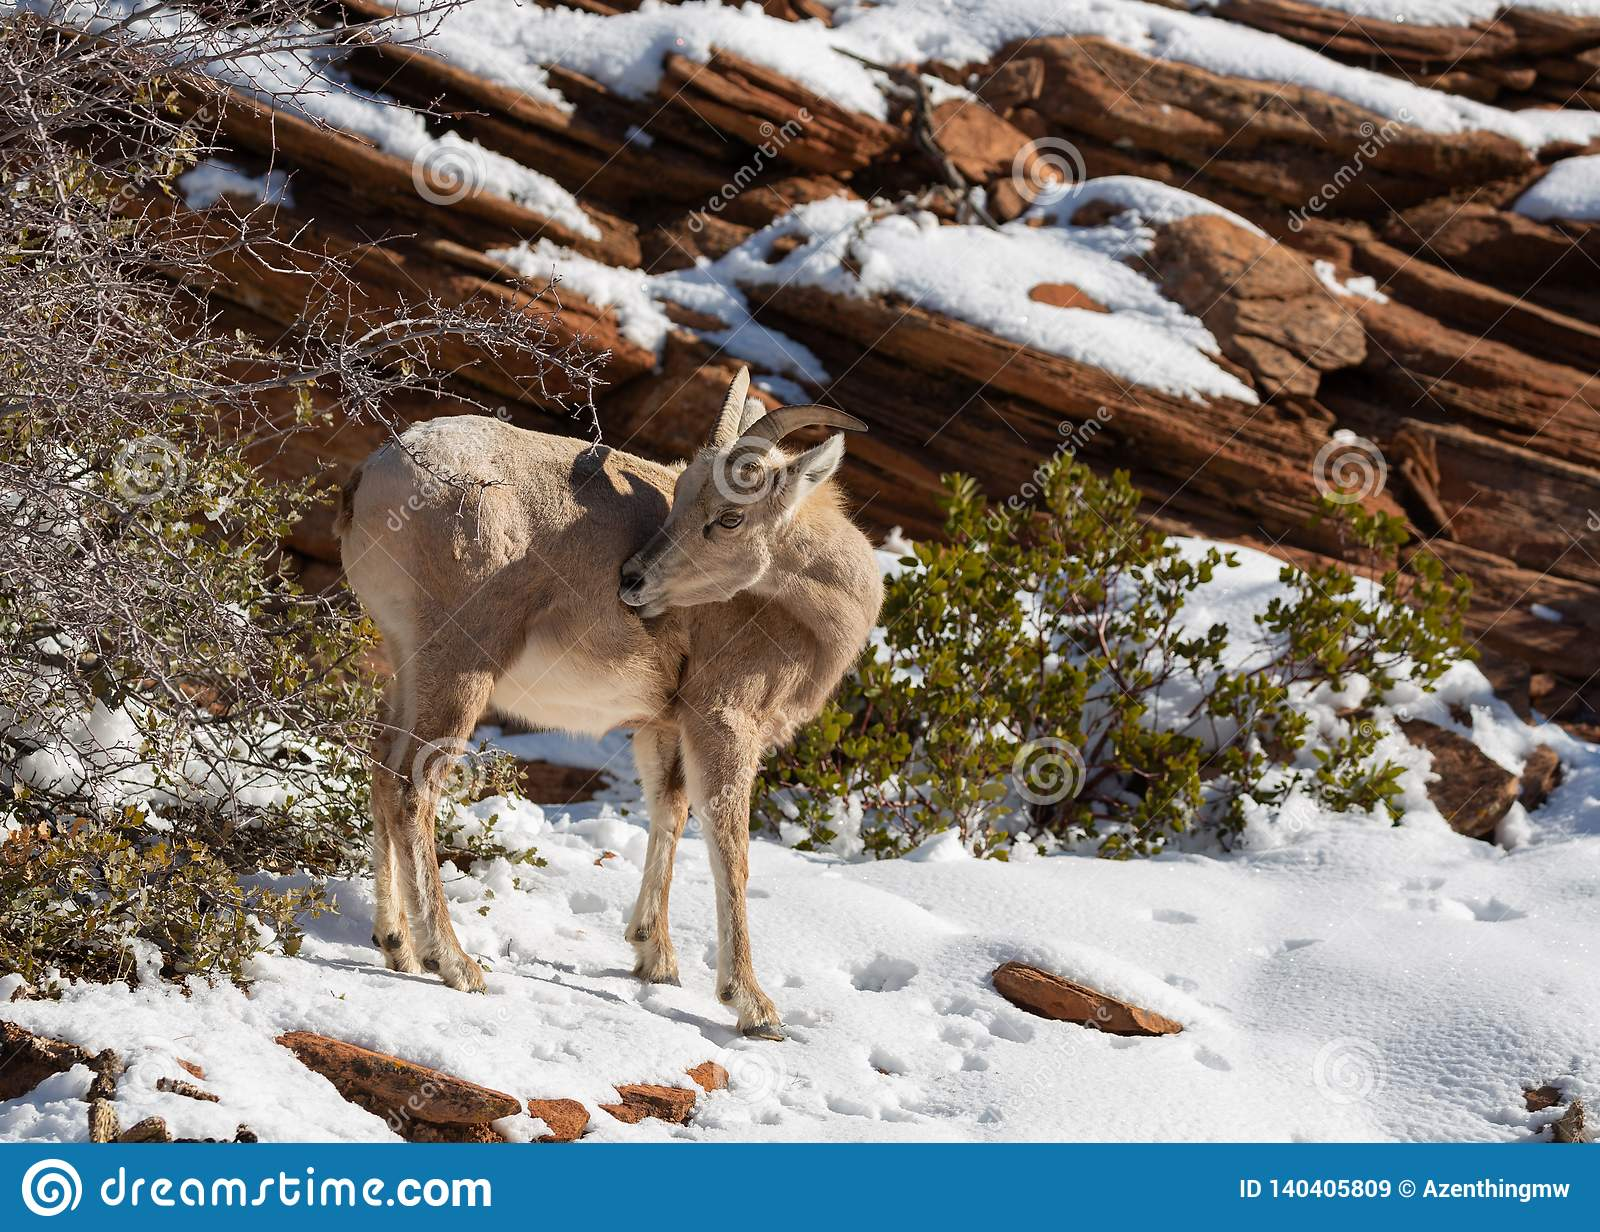 A desert big horned sheep ewe reaches back to scratch an itch on her side